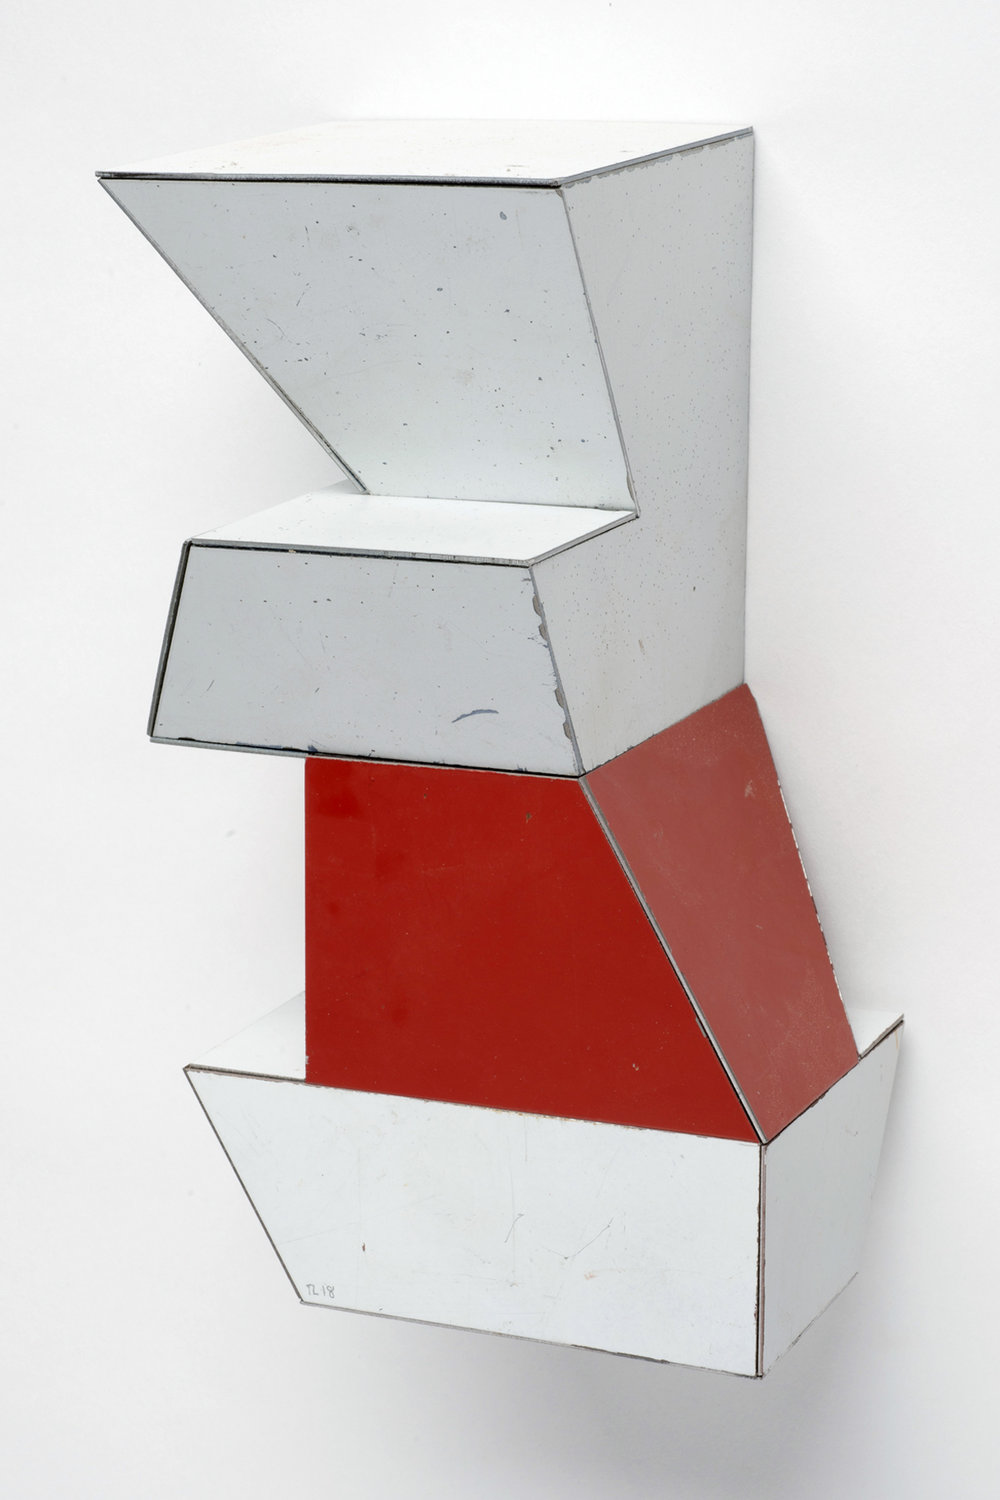 Fuzzy Logic, 7.5 x 4 x 4 inches / 19 x 10.2 x 10.2 cm, salvage steel, marine-grade plywood, silicone, vulcanized rubber, hardware, 2018